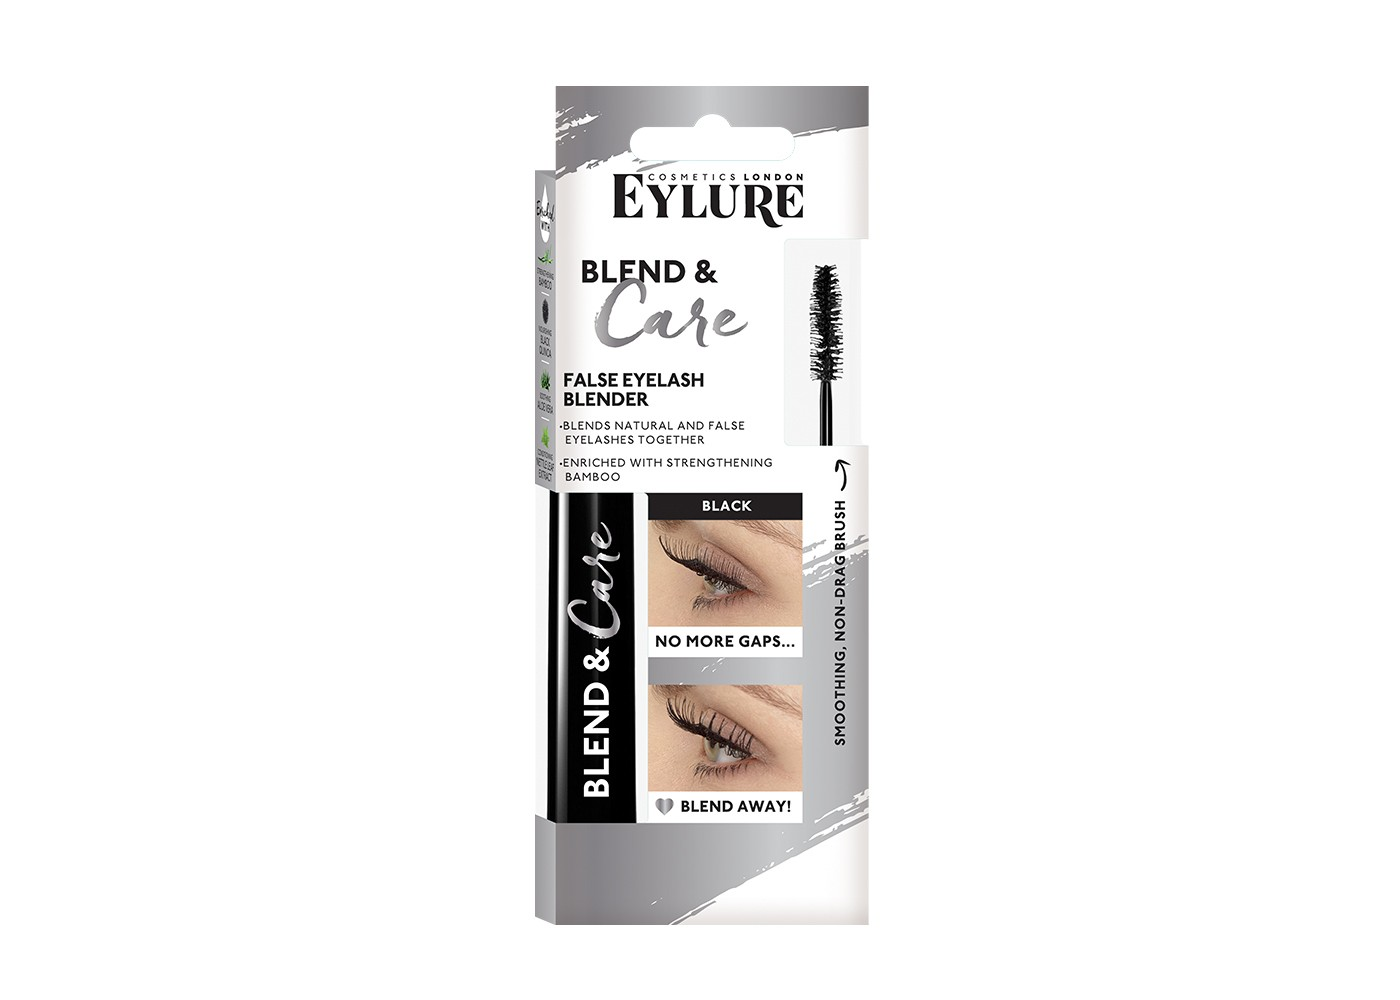 Eylure Blend & Care False Eyelash Blender